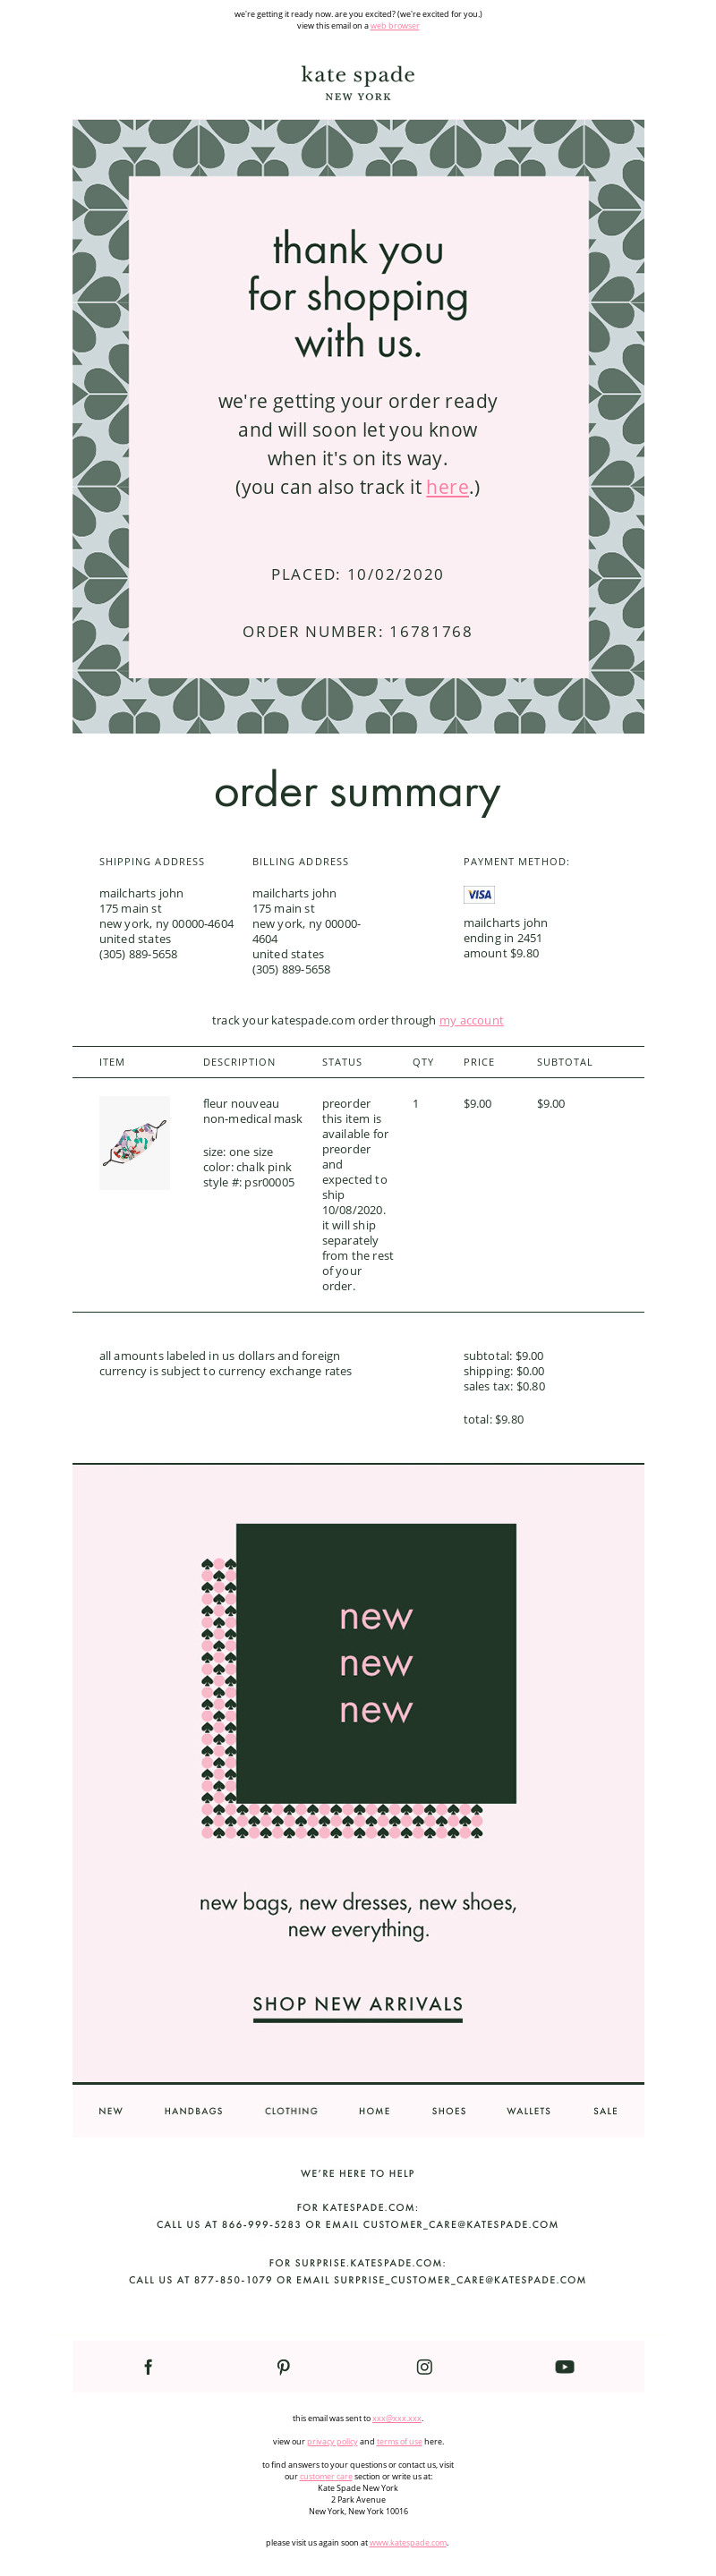 Kate Spade New York - thank you for your order #16781768